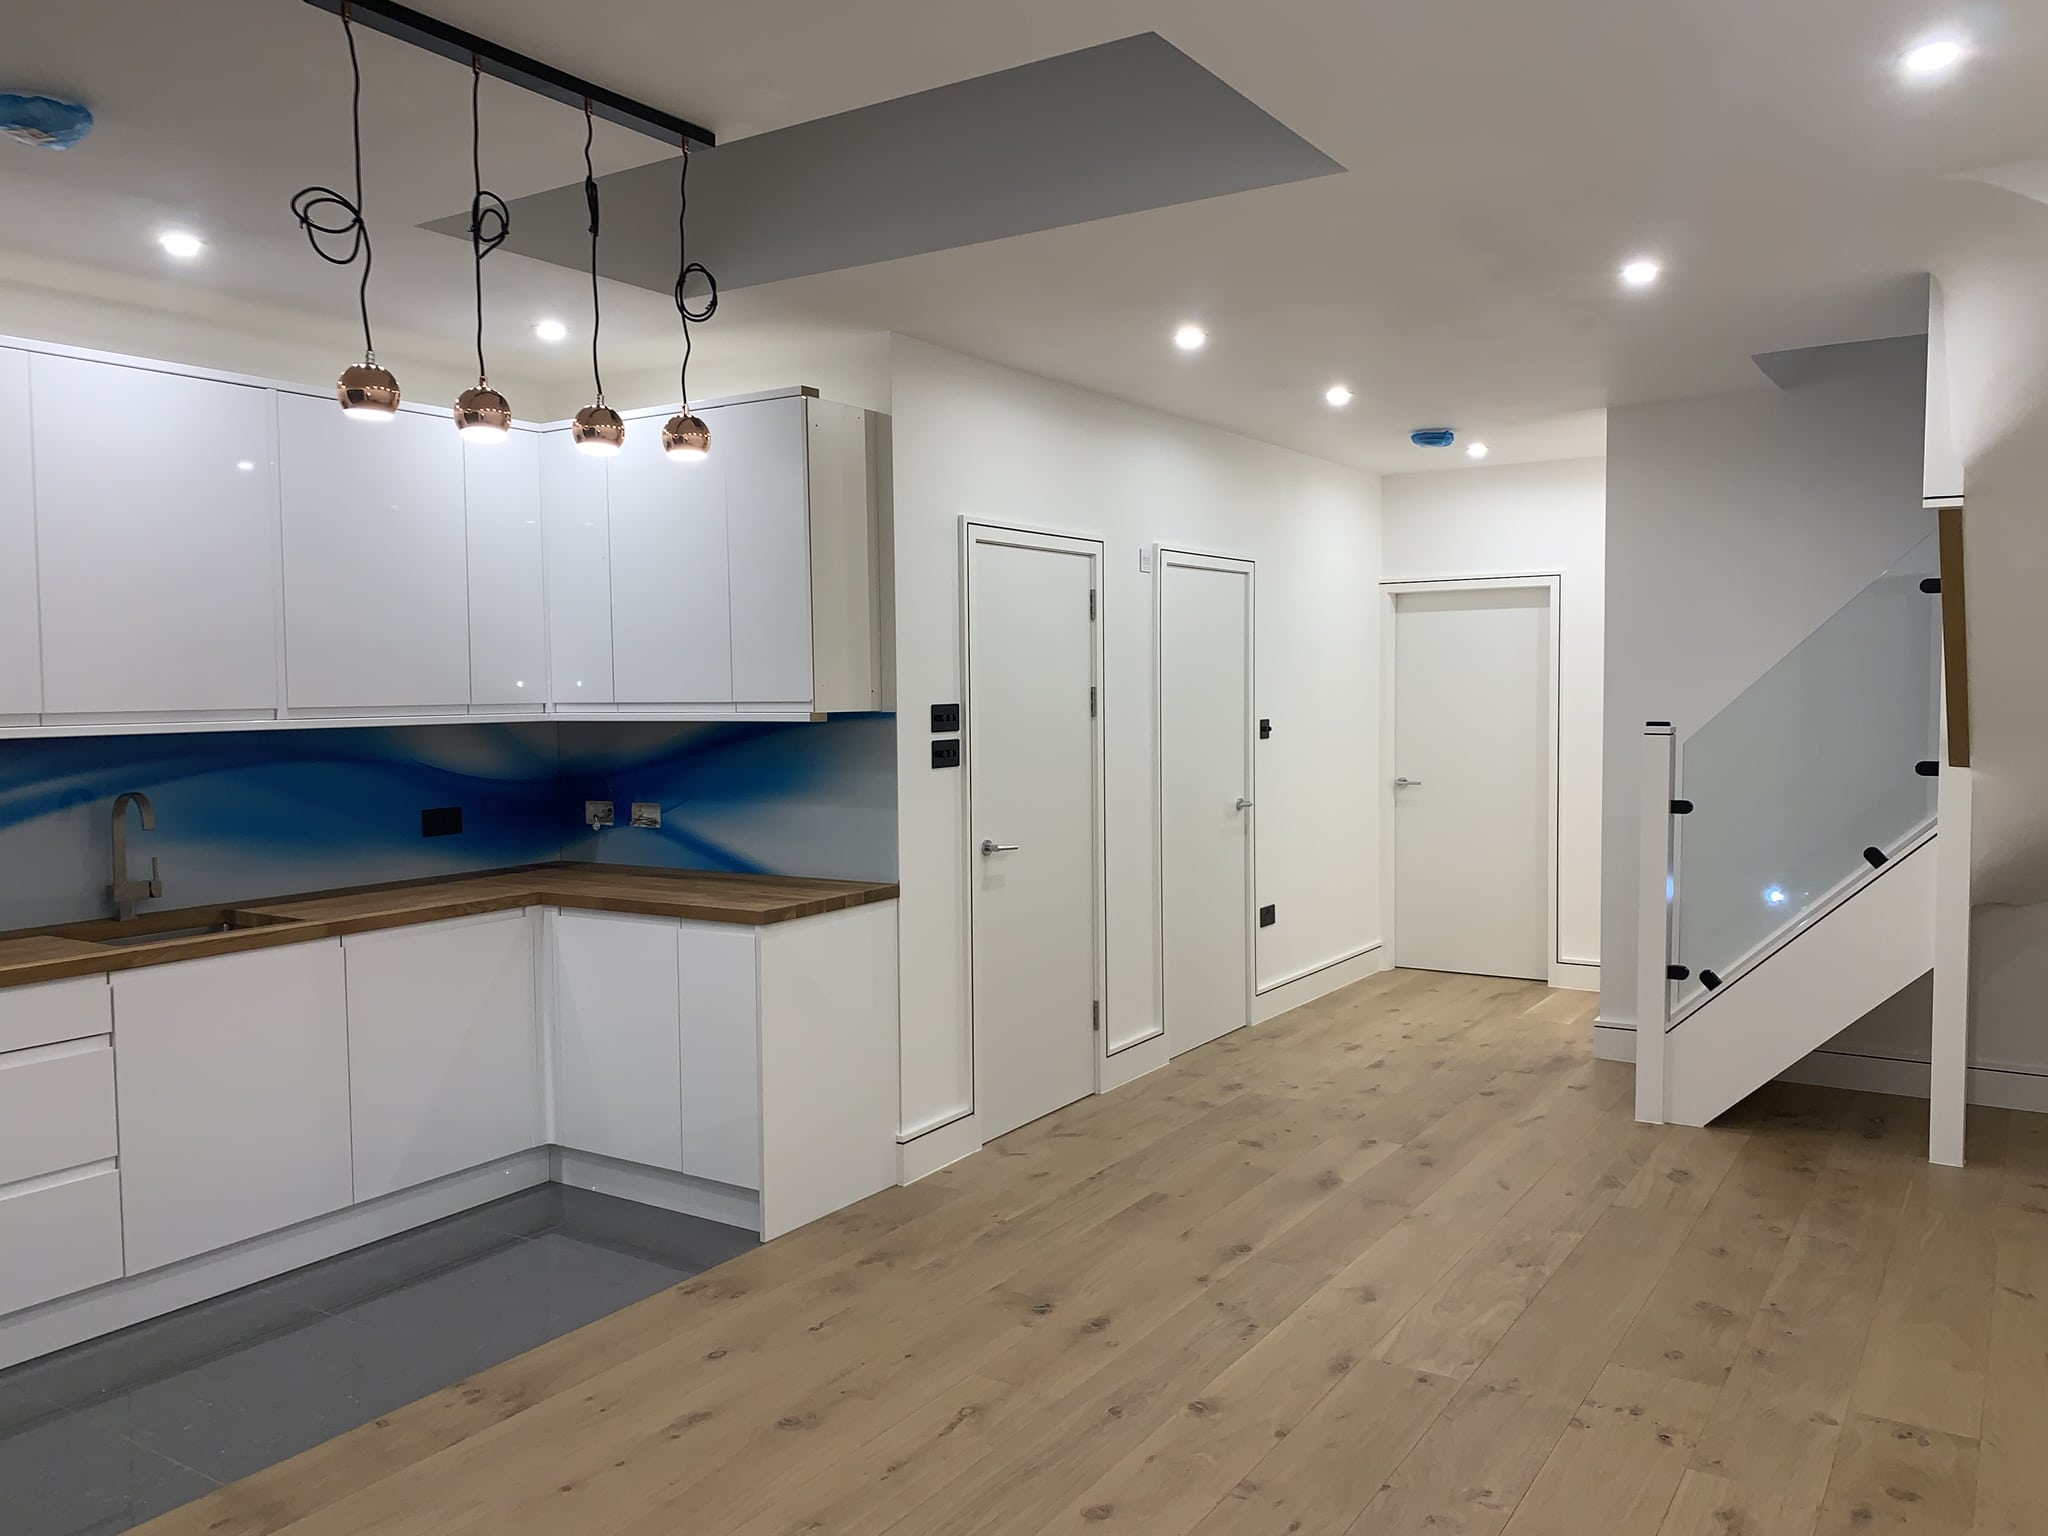 Fitted kitchen with high gloss units and custom glass splashback. Engineered wood floor.